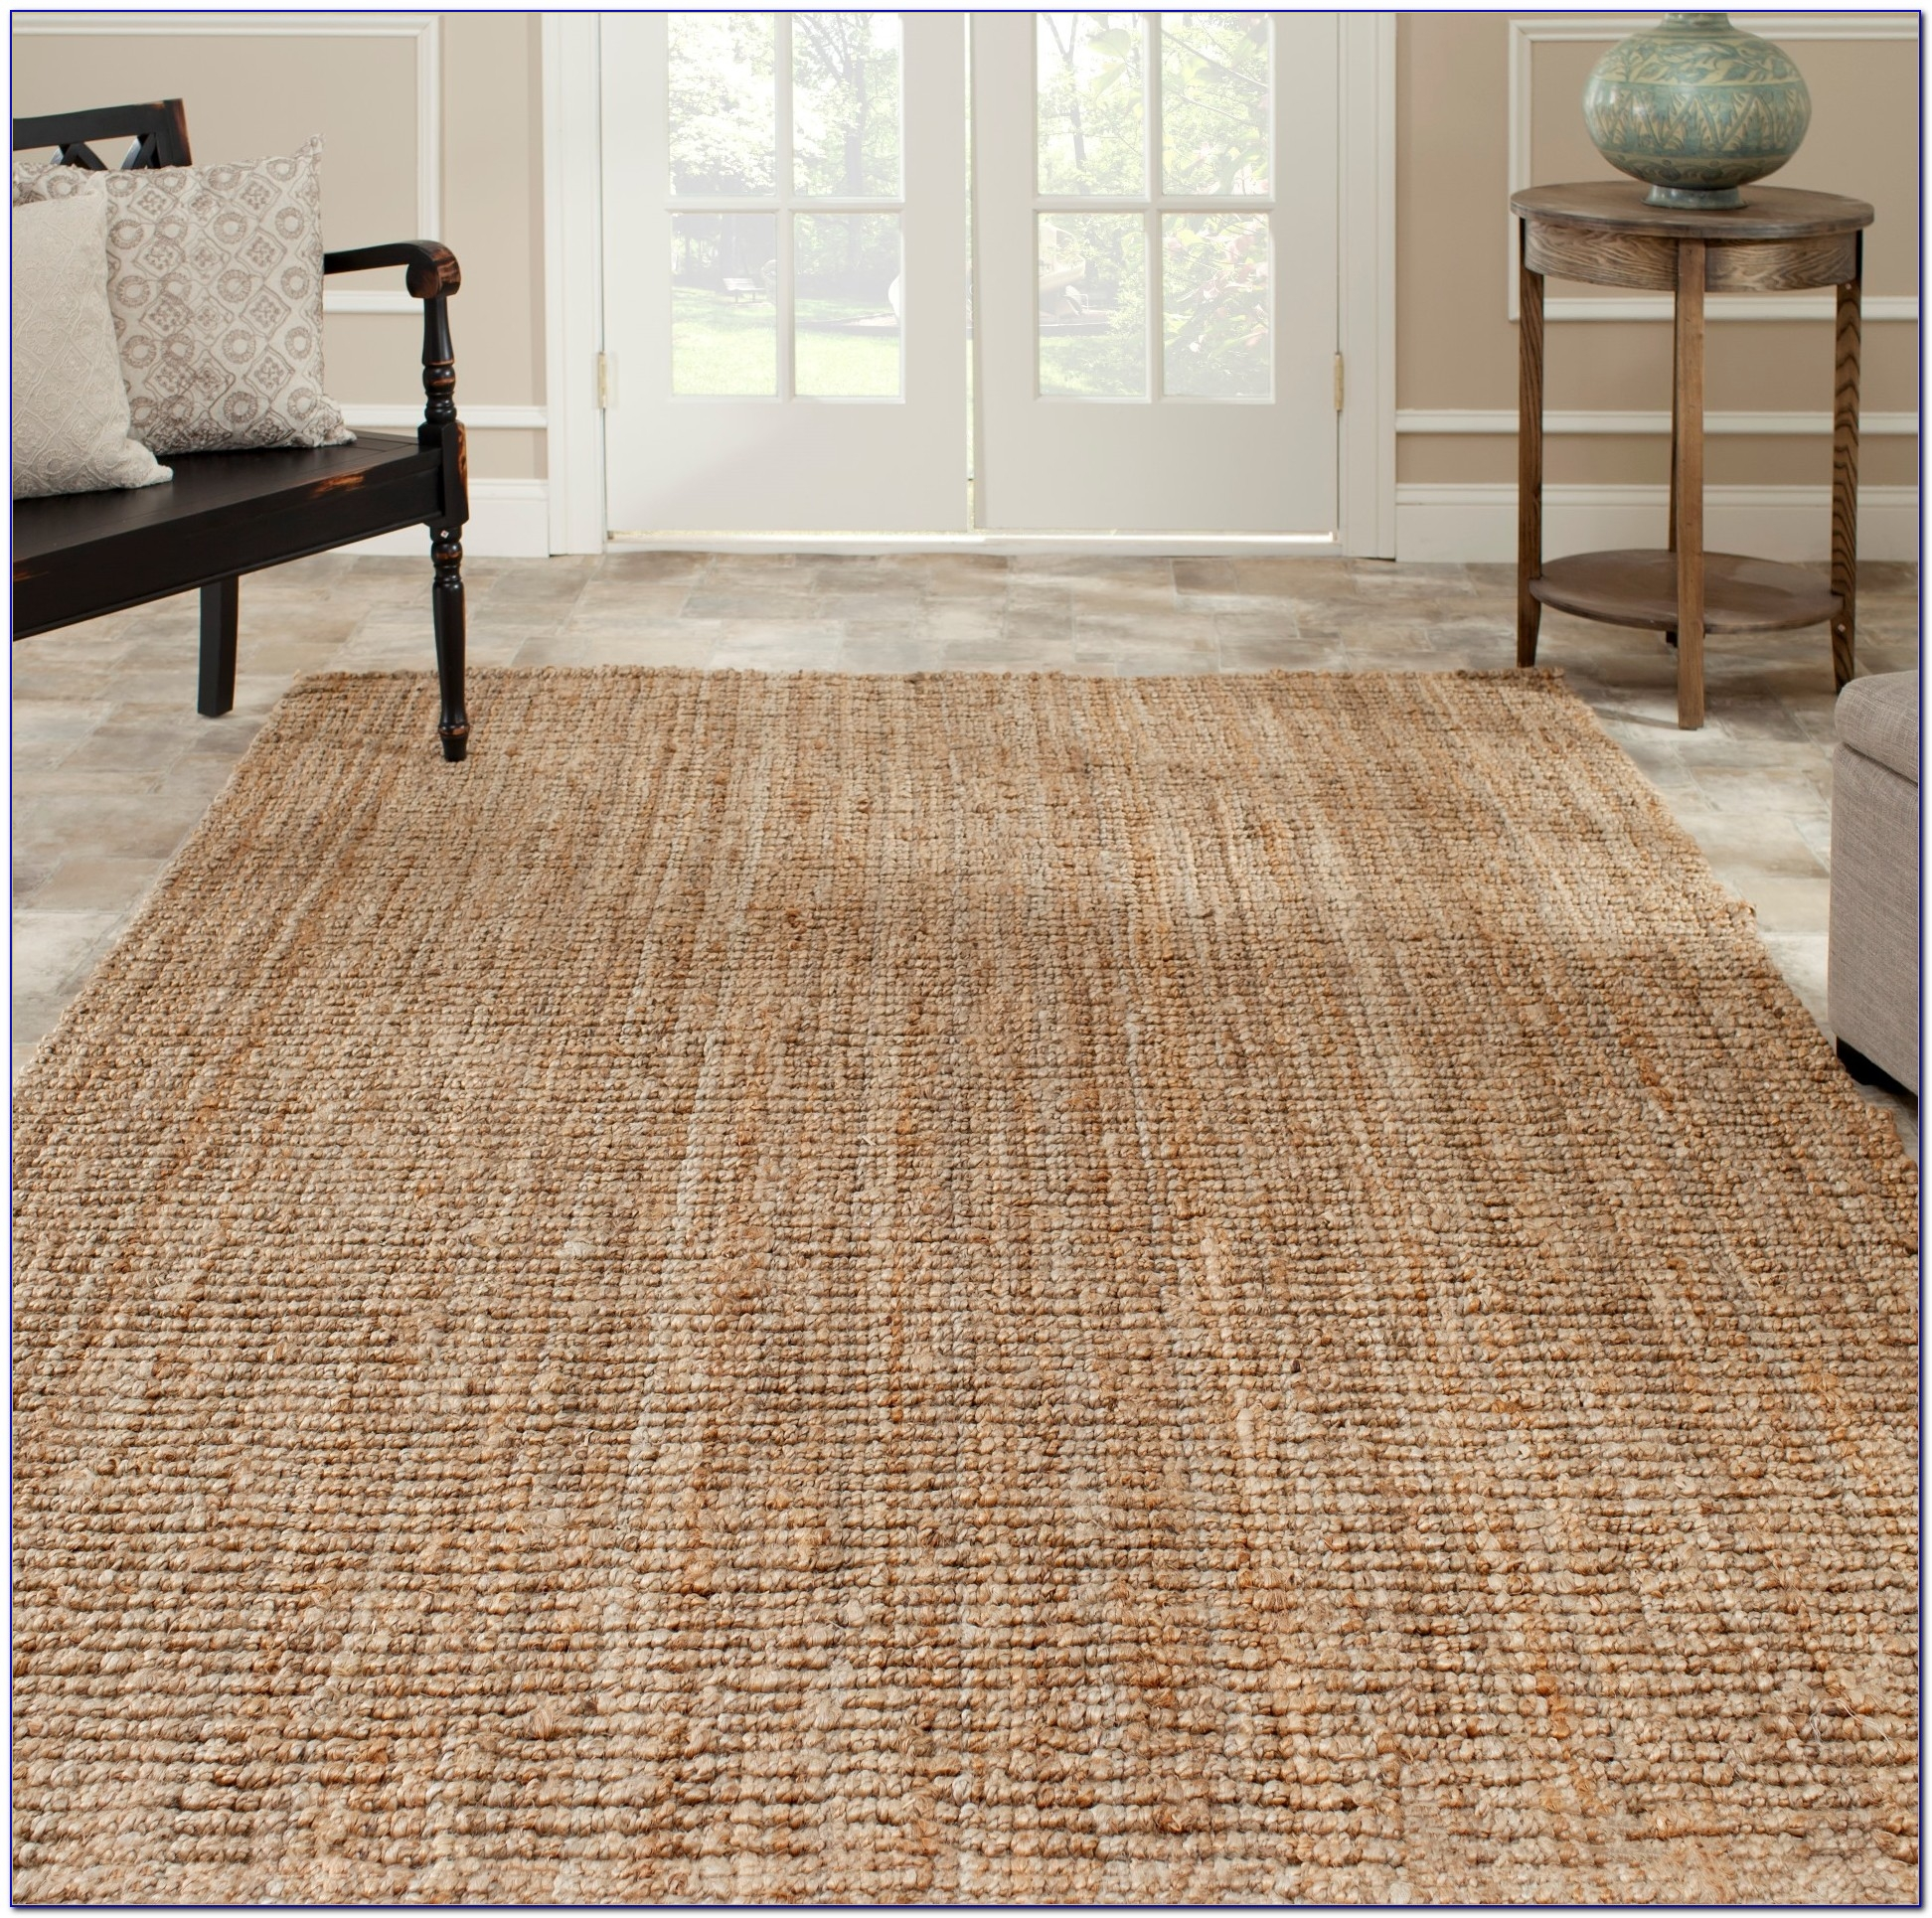 Sisal Area Rugs Toronto Rugs Home Design Ideas 5vwl84qwdd Intended For Wool Area Rugs Toronto (#10 of 15)